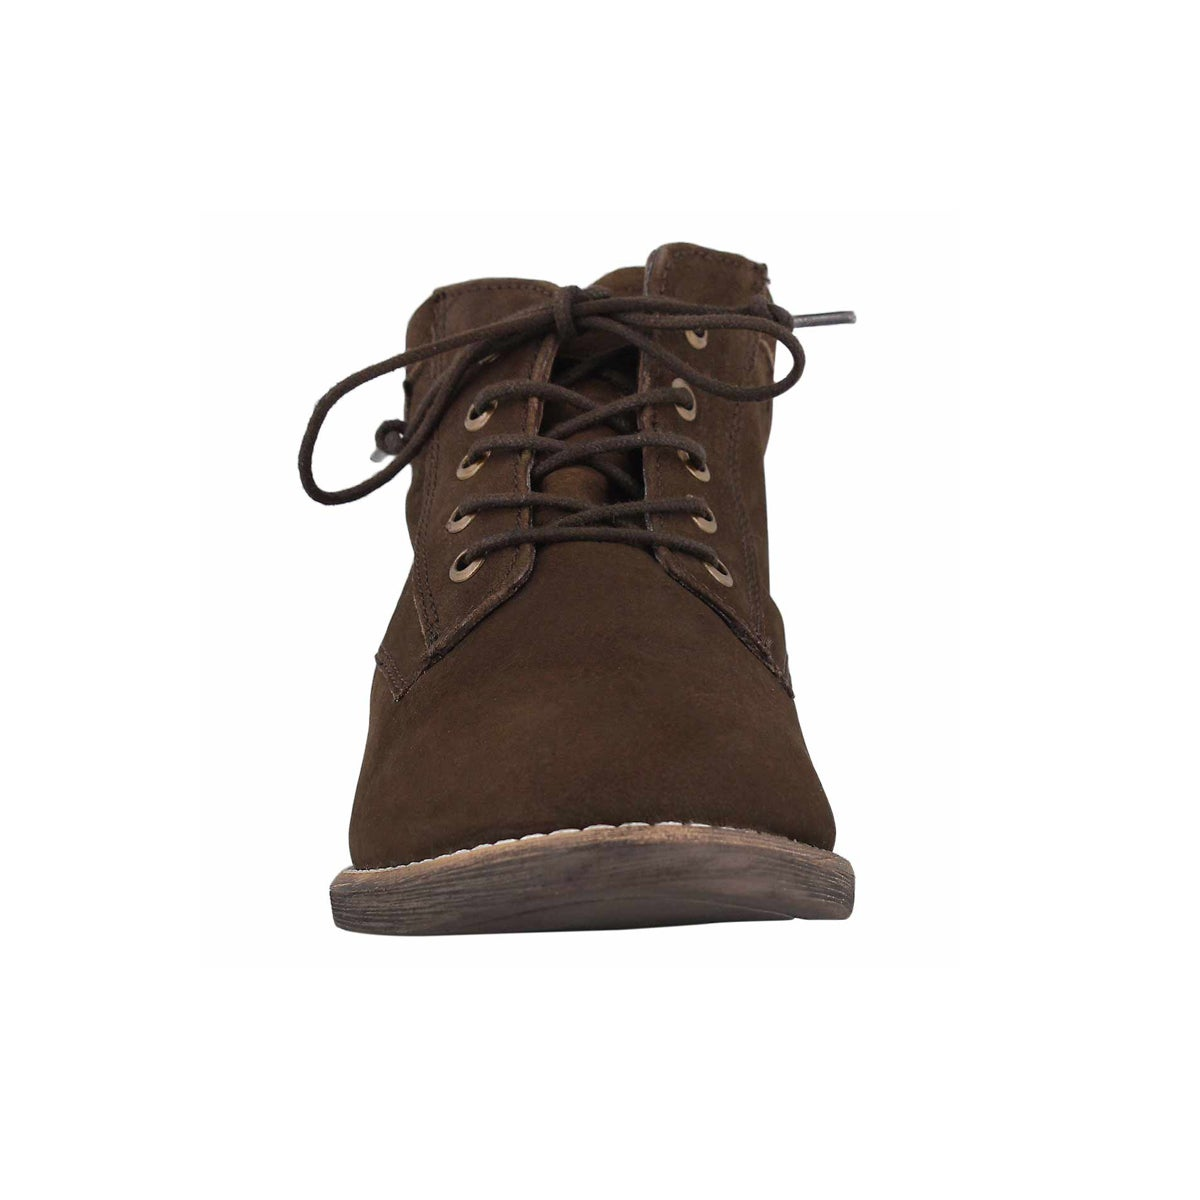 Lds Lois brown lace up booties